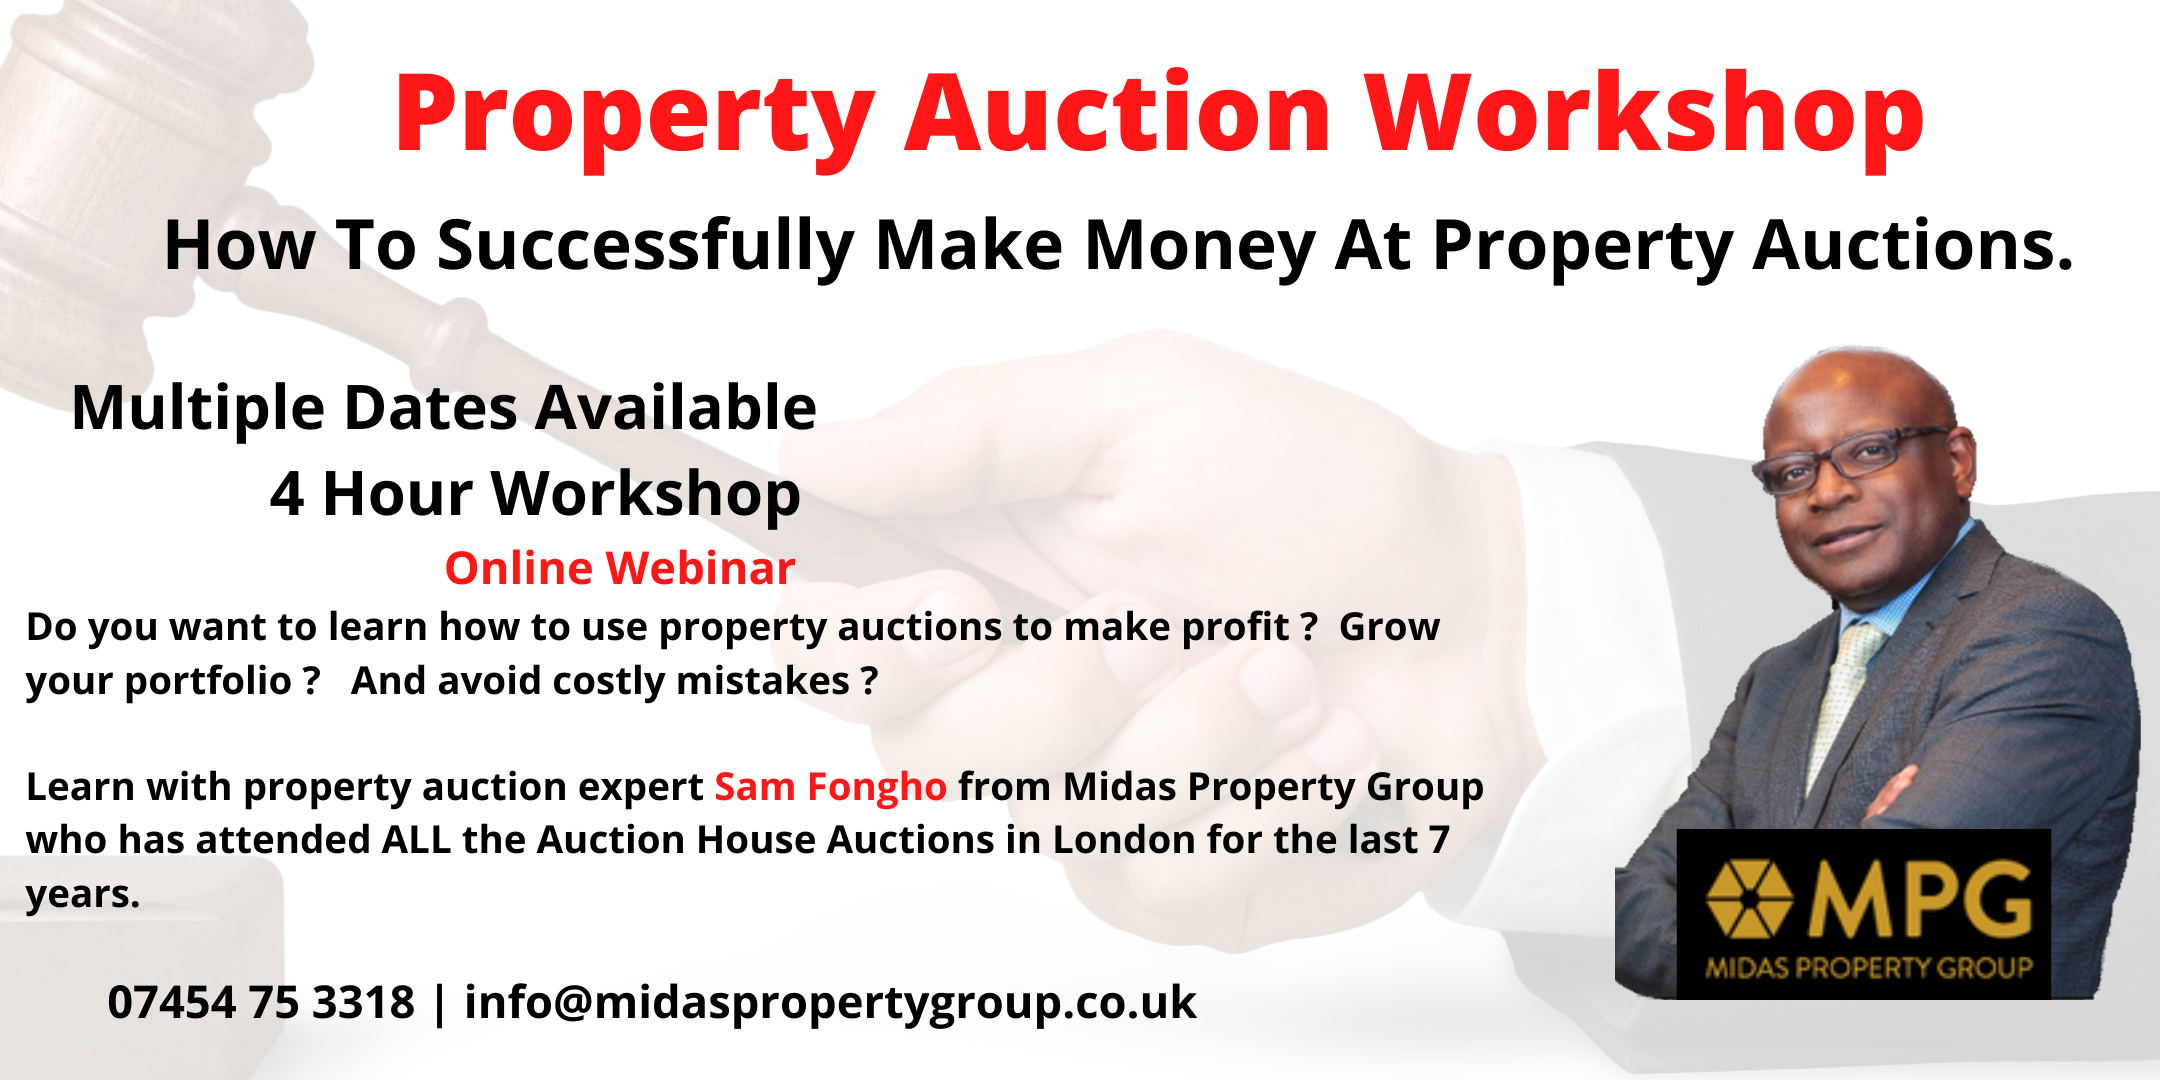 Property Auction Workshop – How Make Money From Auctions